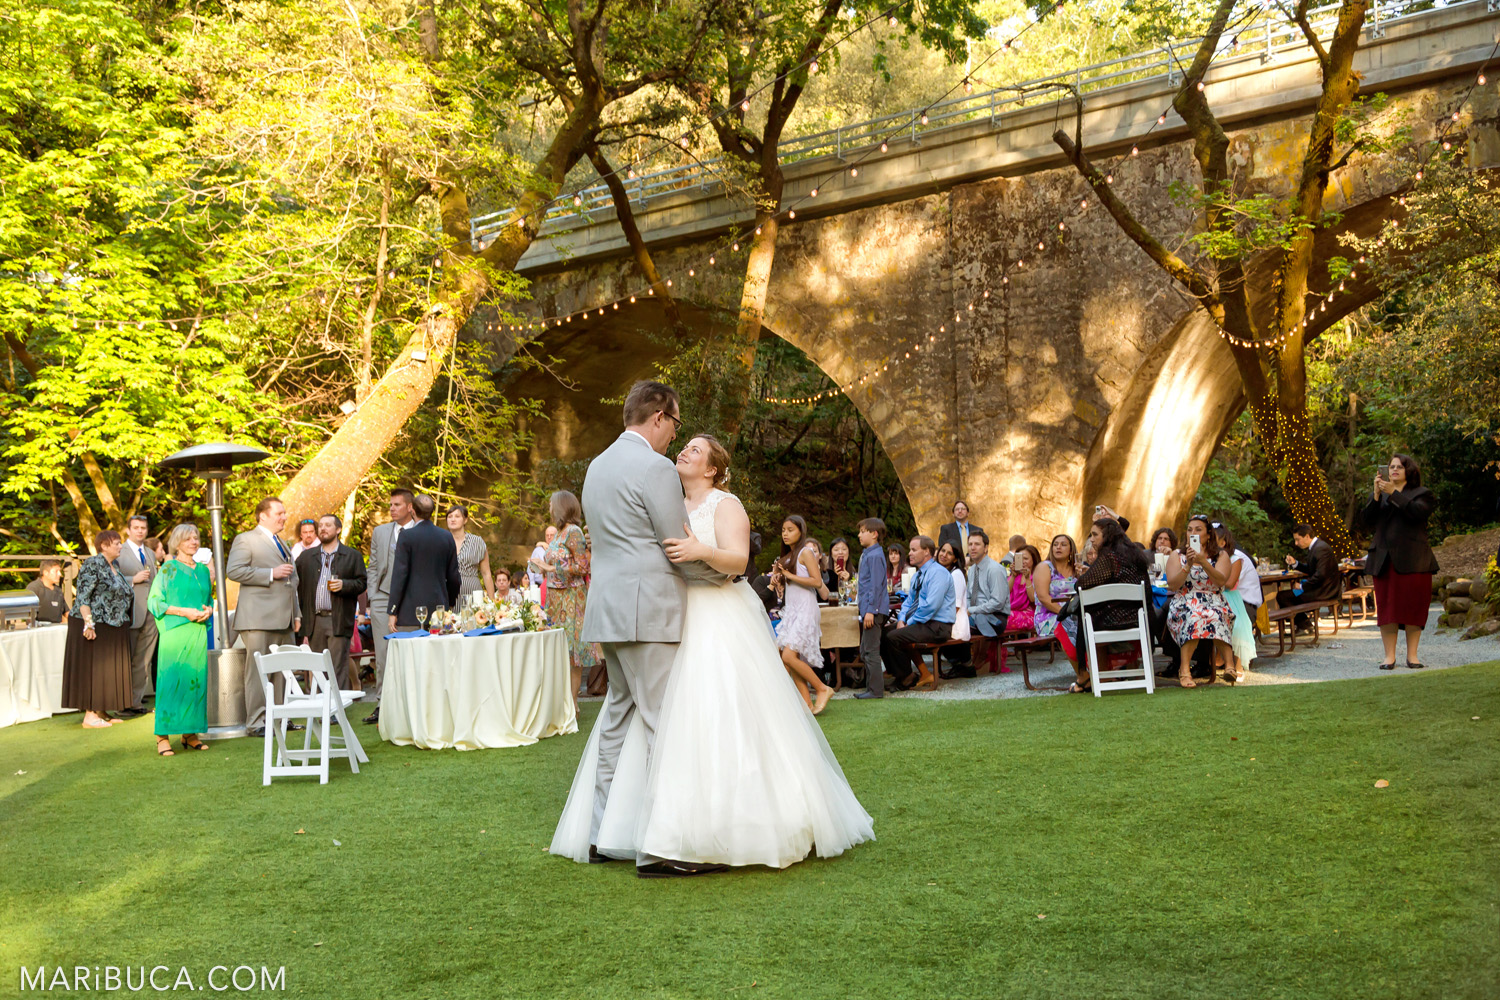 First dance as the married couple in the Saratoga Springs Wedding